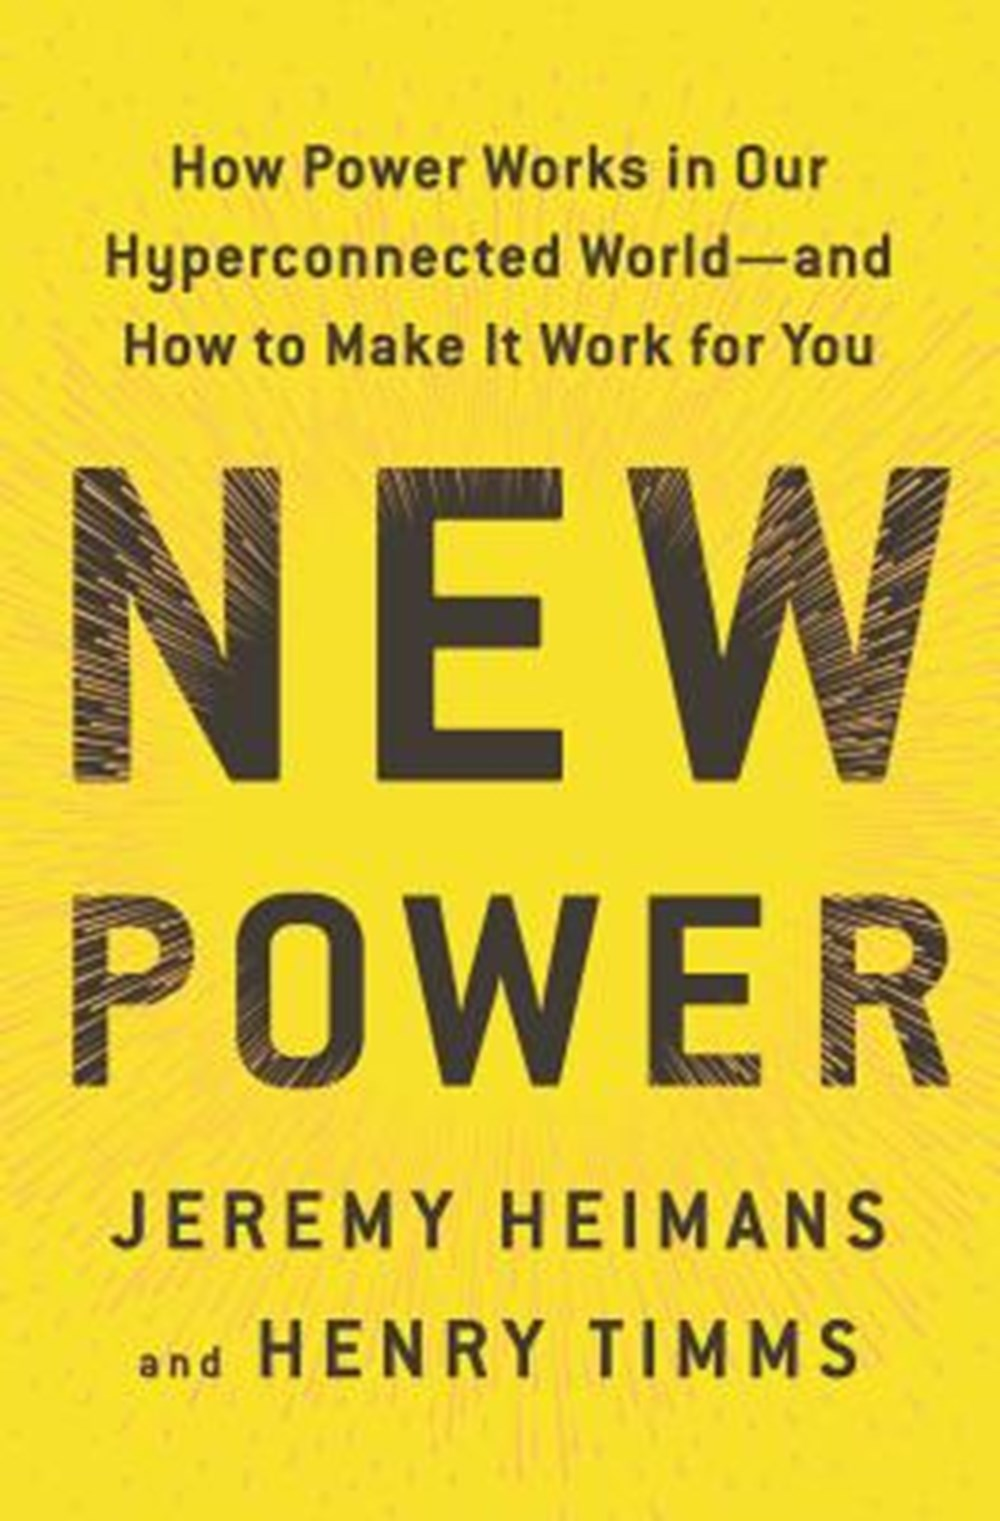 New Power How Power Works in Our Hyperconnected World--And How to Make It Work for You